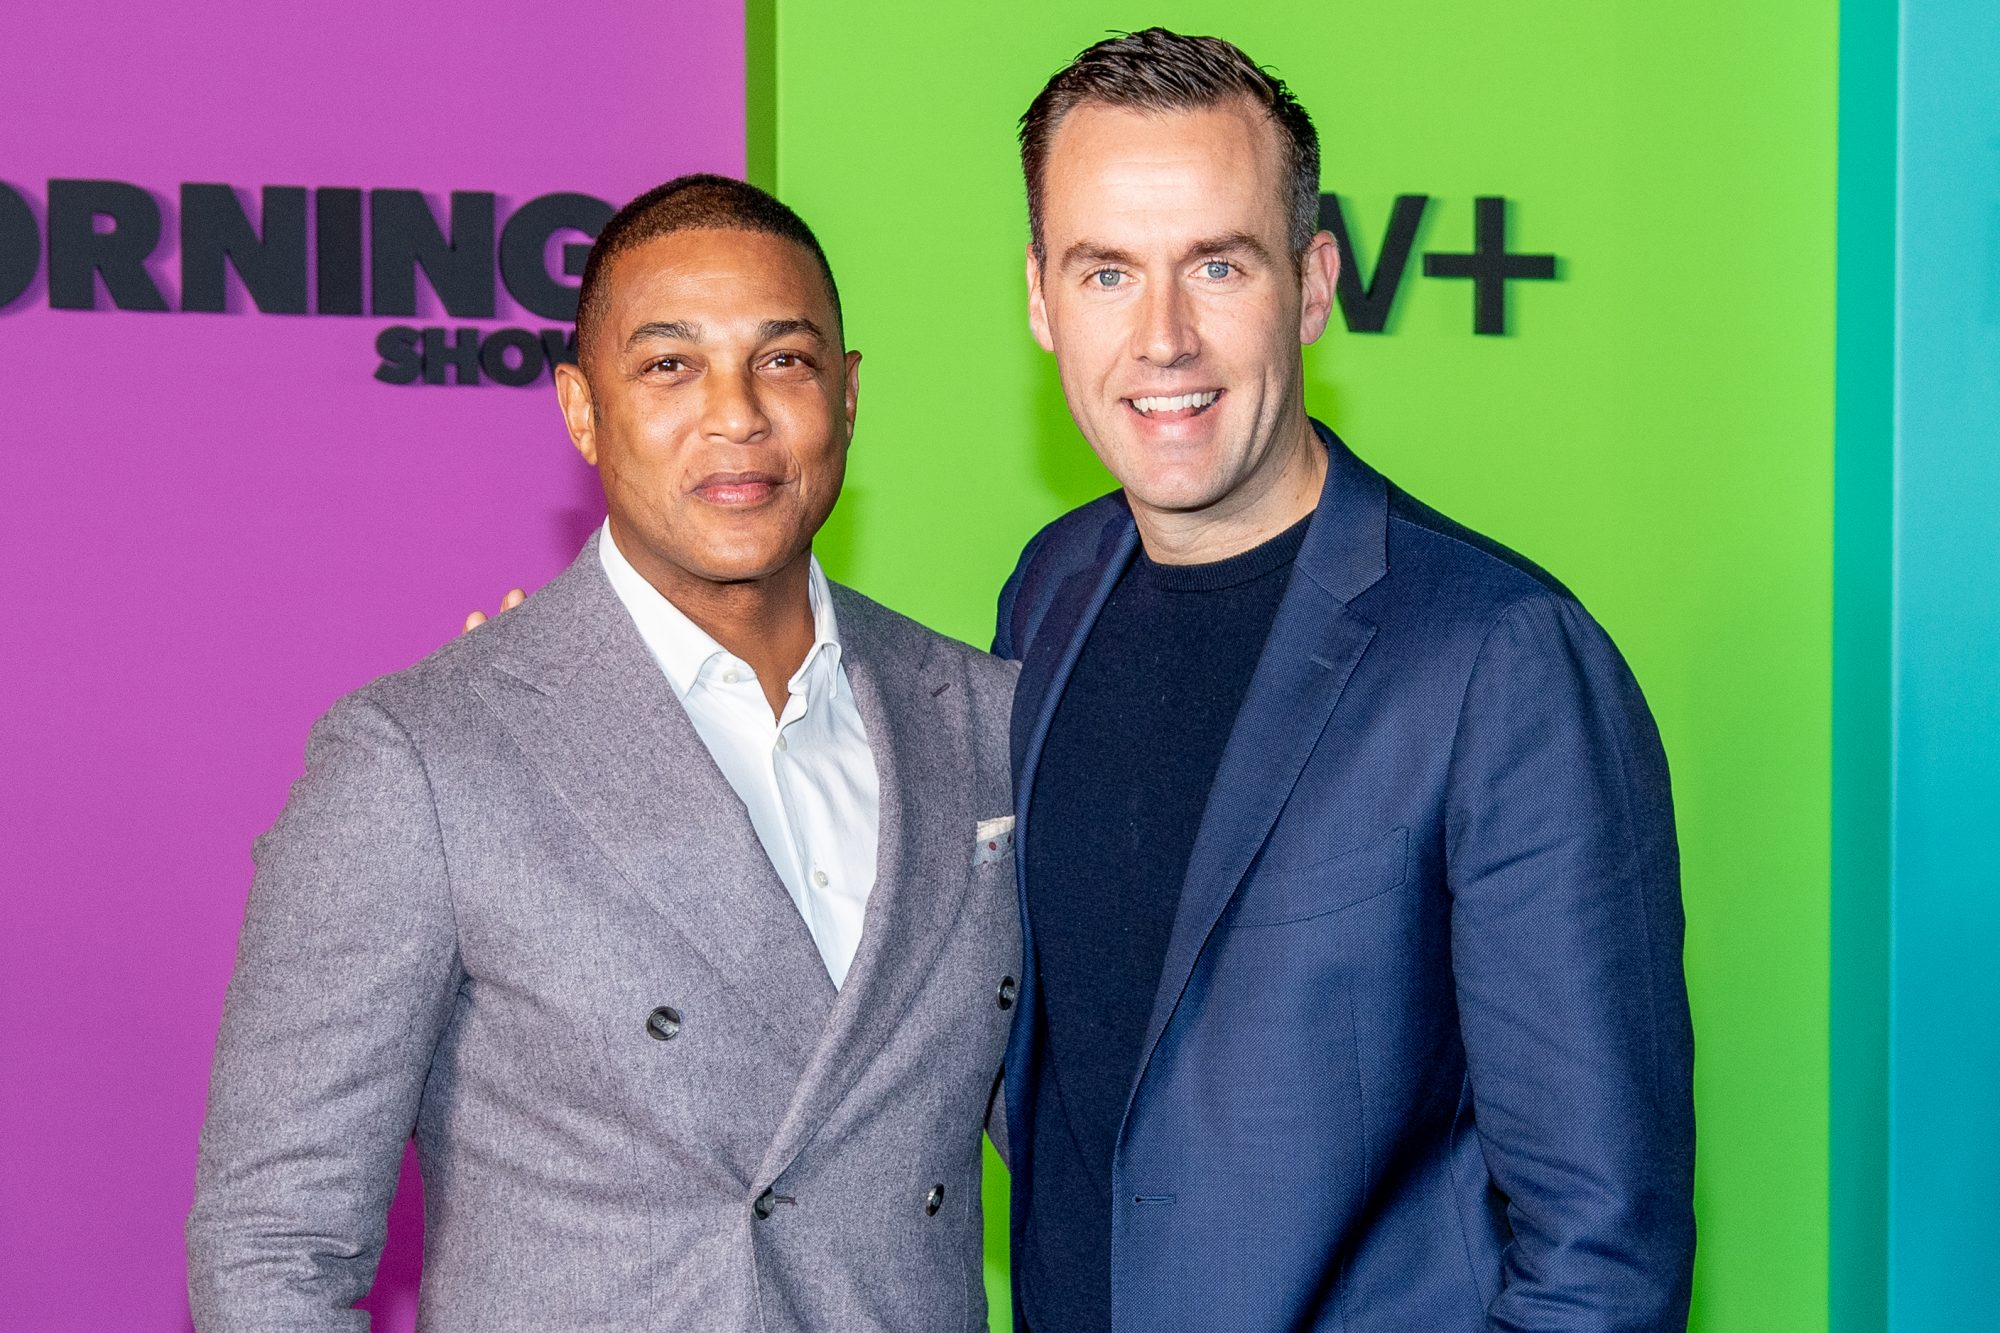 don lemon and tim malone posing and smiling on the red carpet